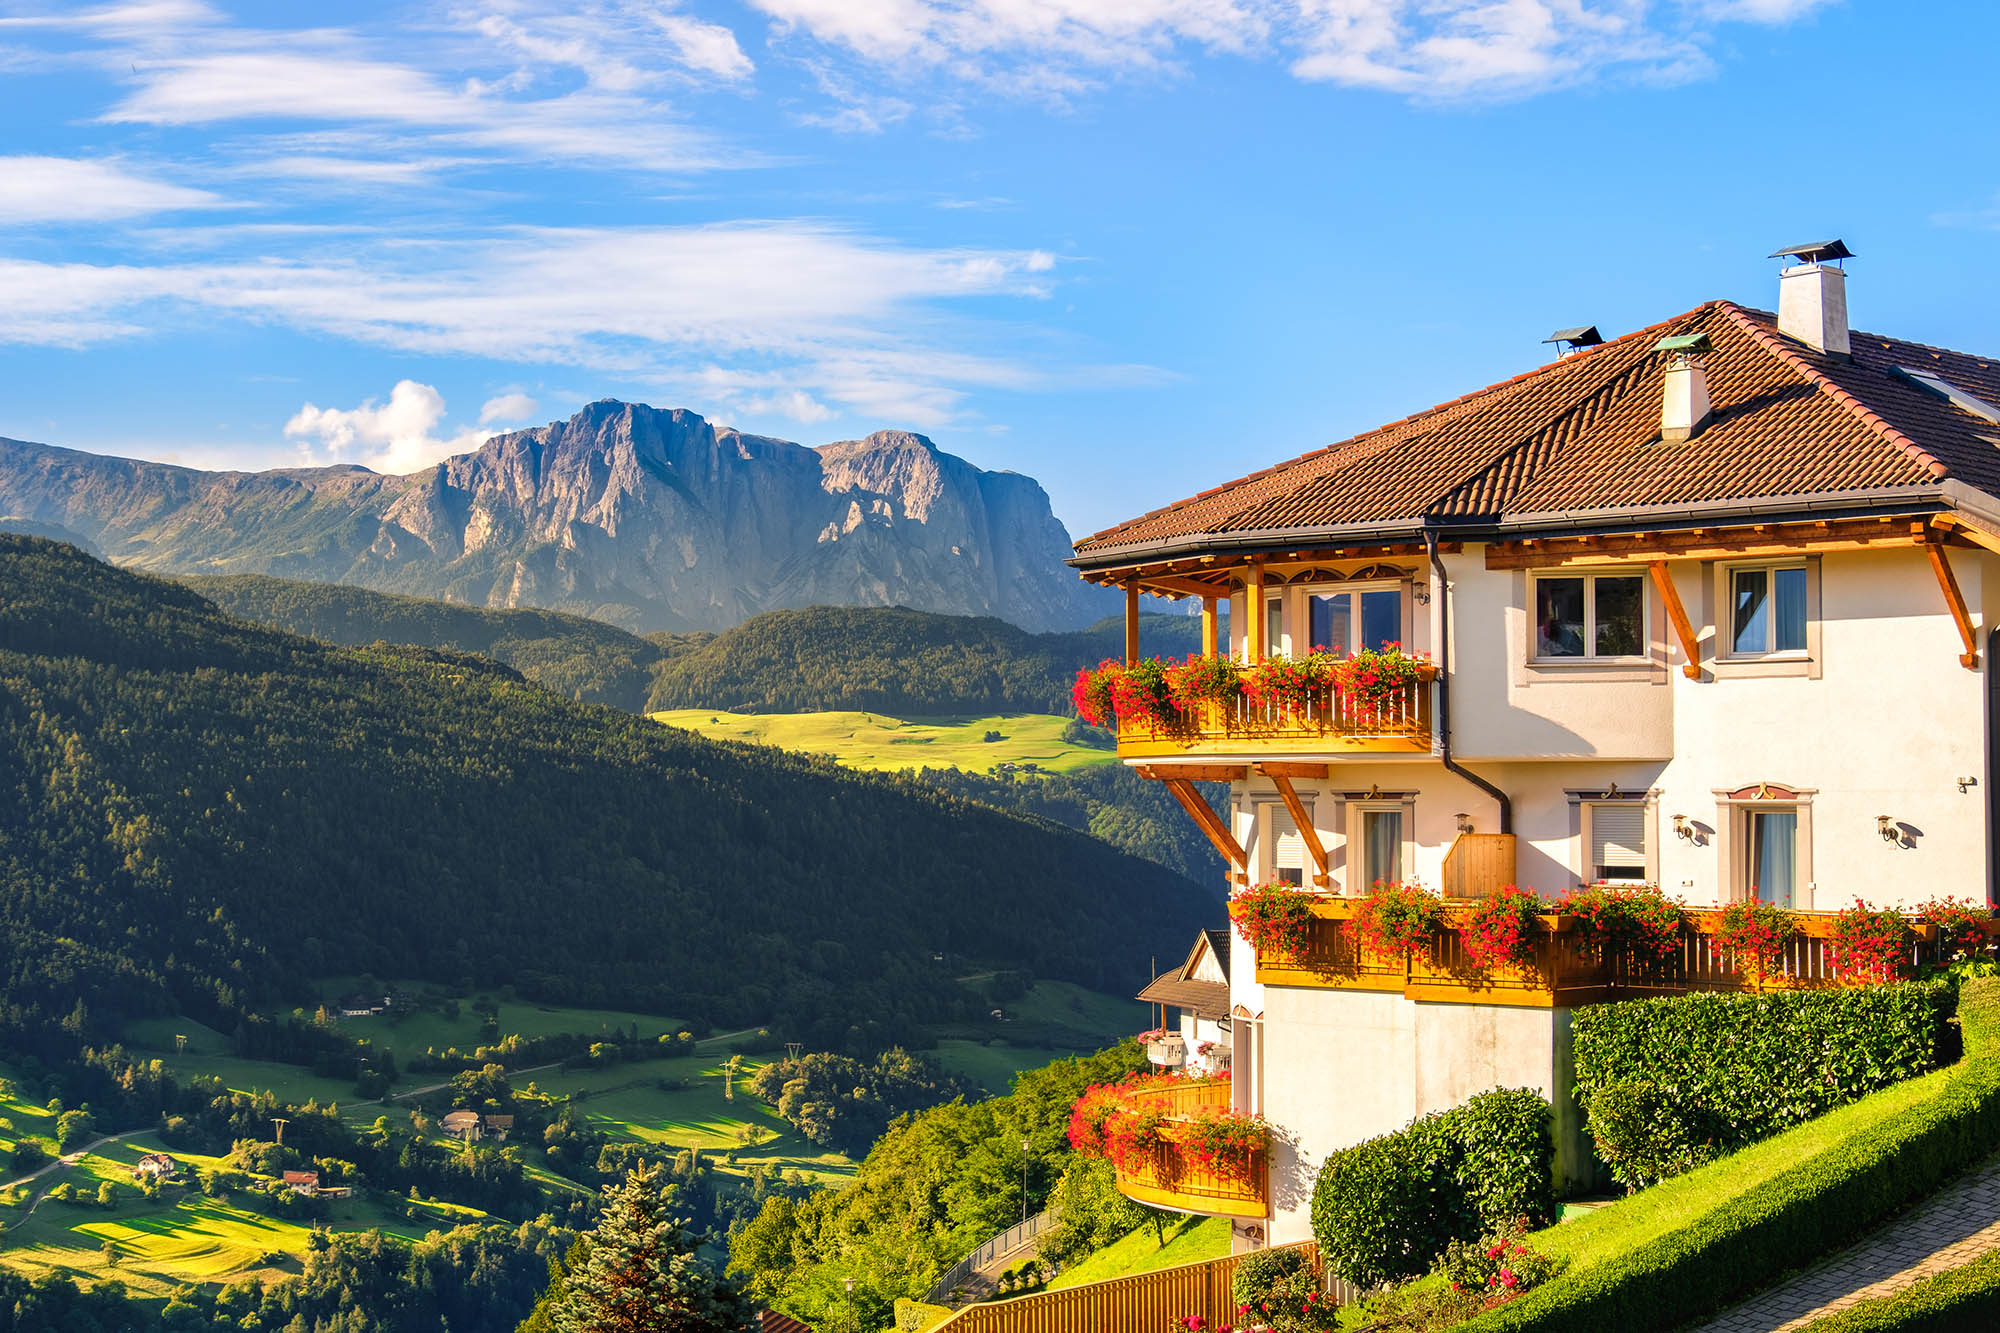 Multistory building with balcony overlooks a sunny Italian Dolomites, with lush green surroundings.